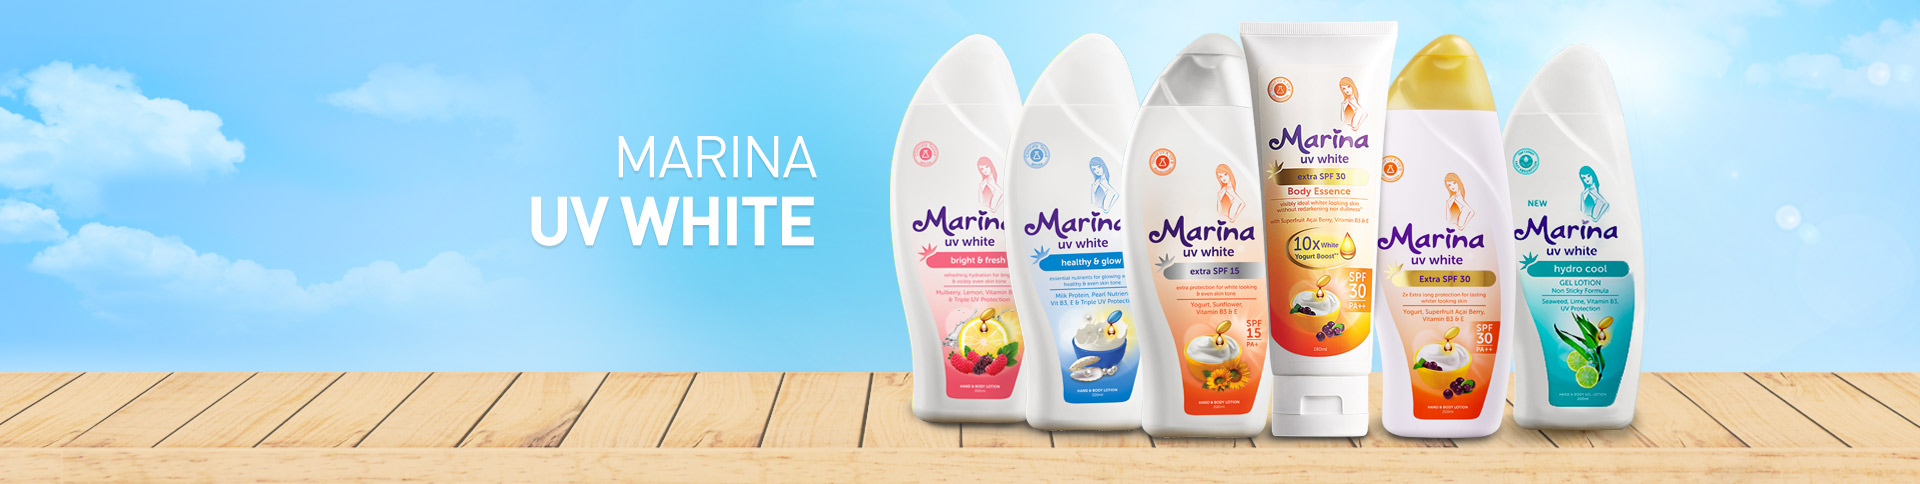 MARINA UV WHITE